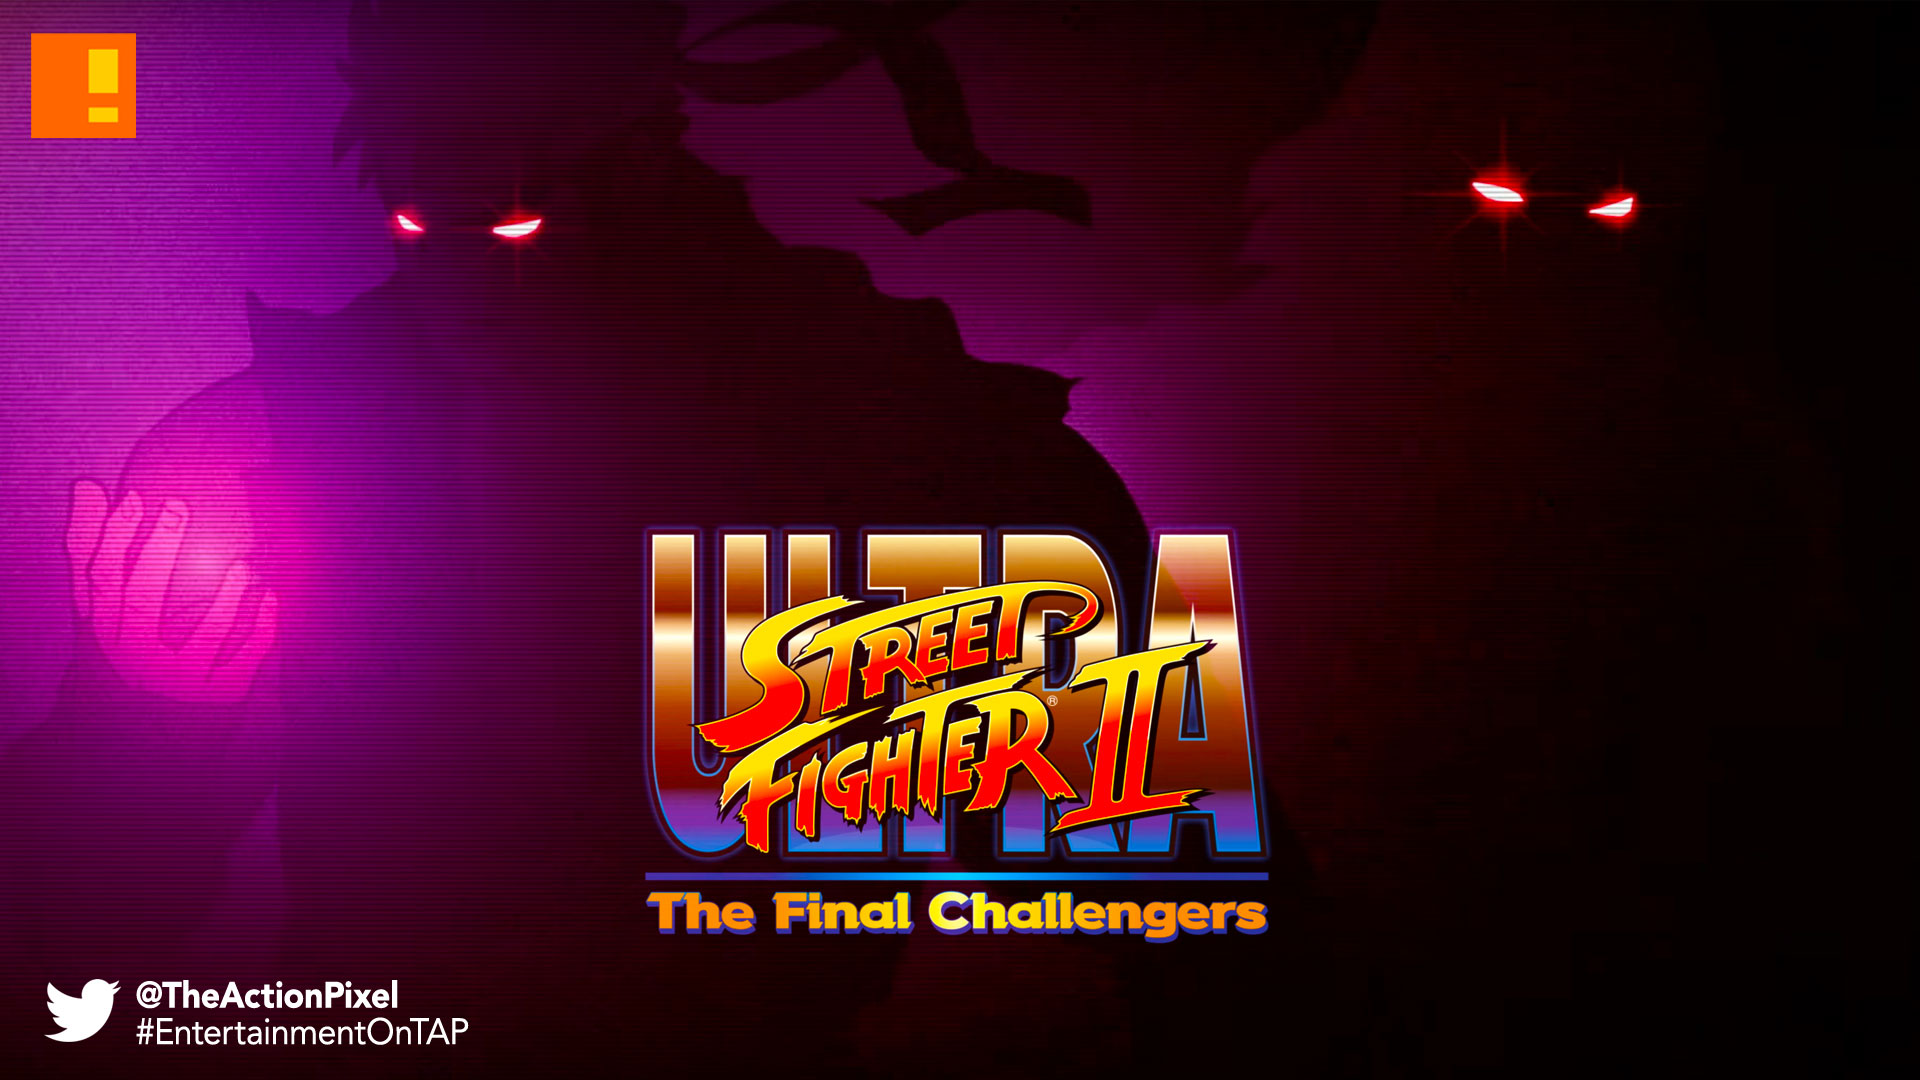 ryu, ken, evil ryu, violent ken, ultra street fighter II, the final challengers, ultra street fighter 2, street fighter, street fighter 2, street fighter ii, announce trailer, trailer, snes, nintendo, switch, nintendo switch, capcom,